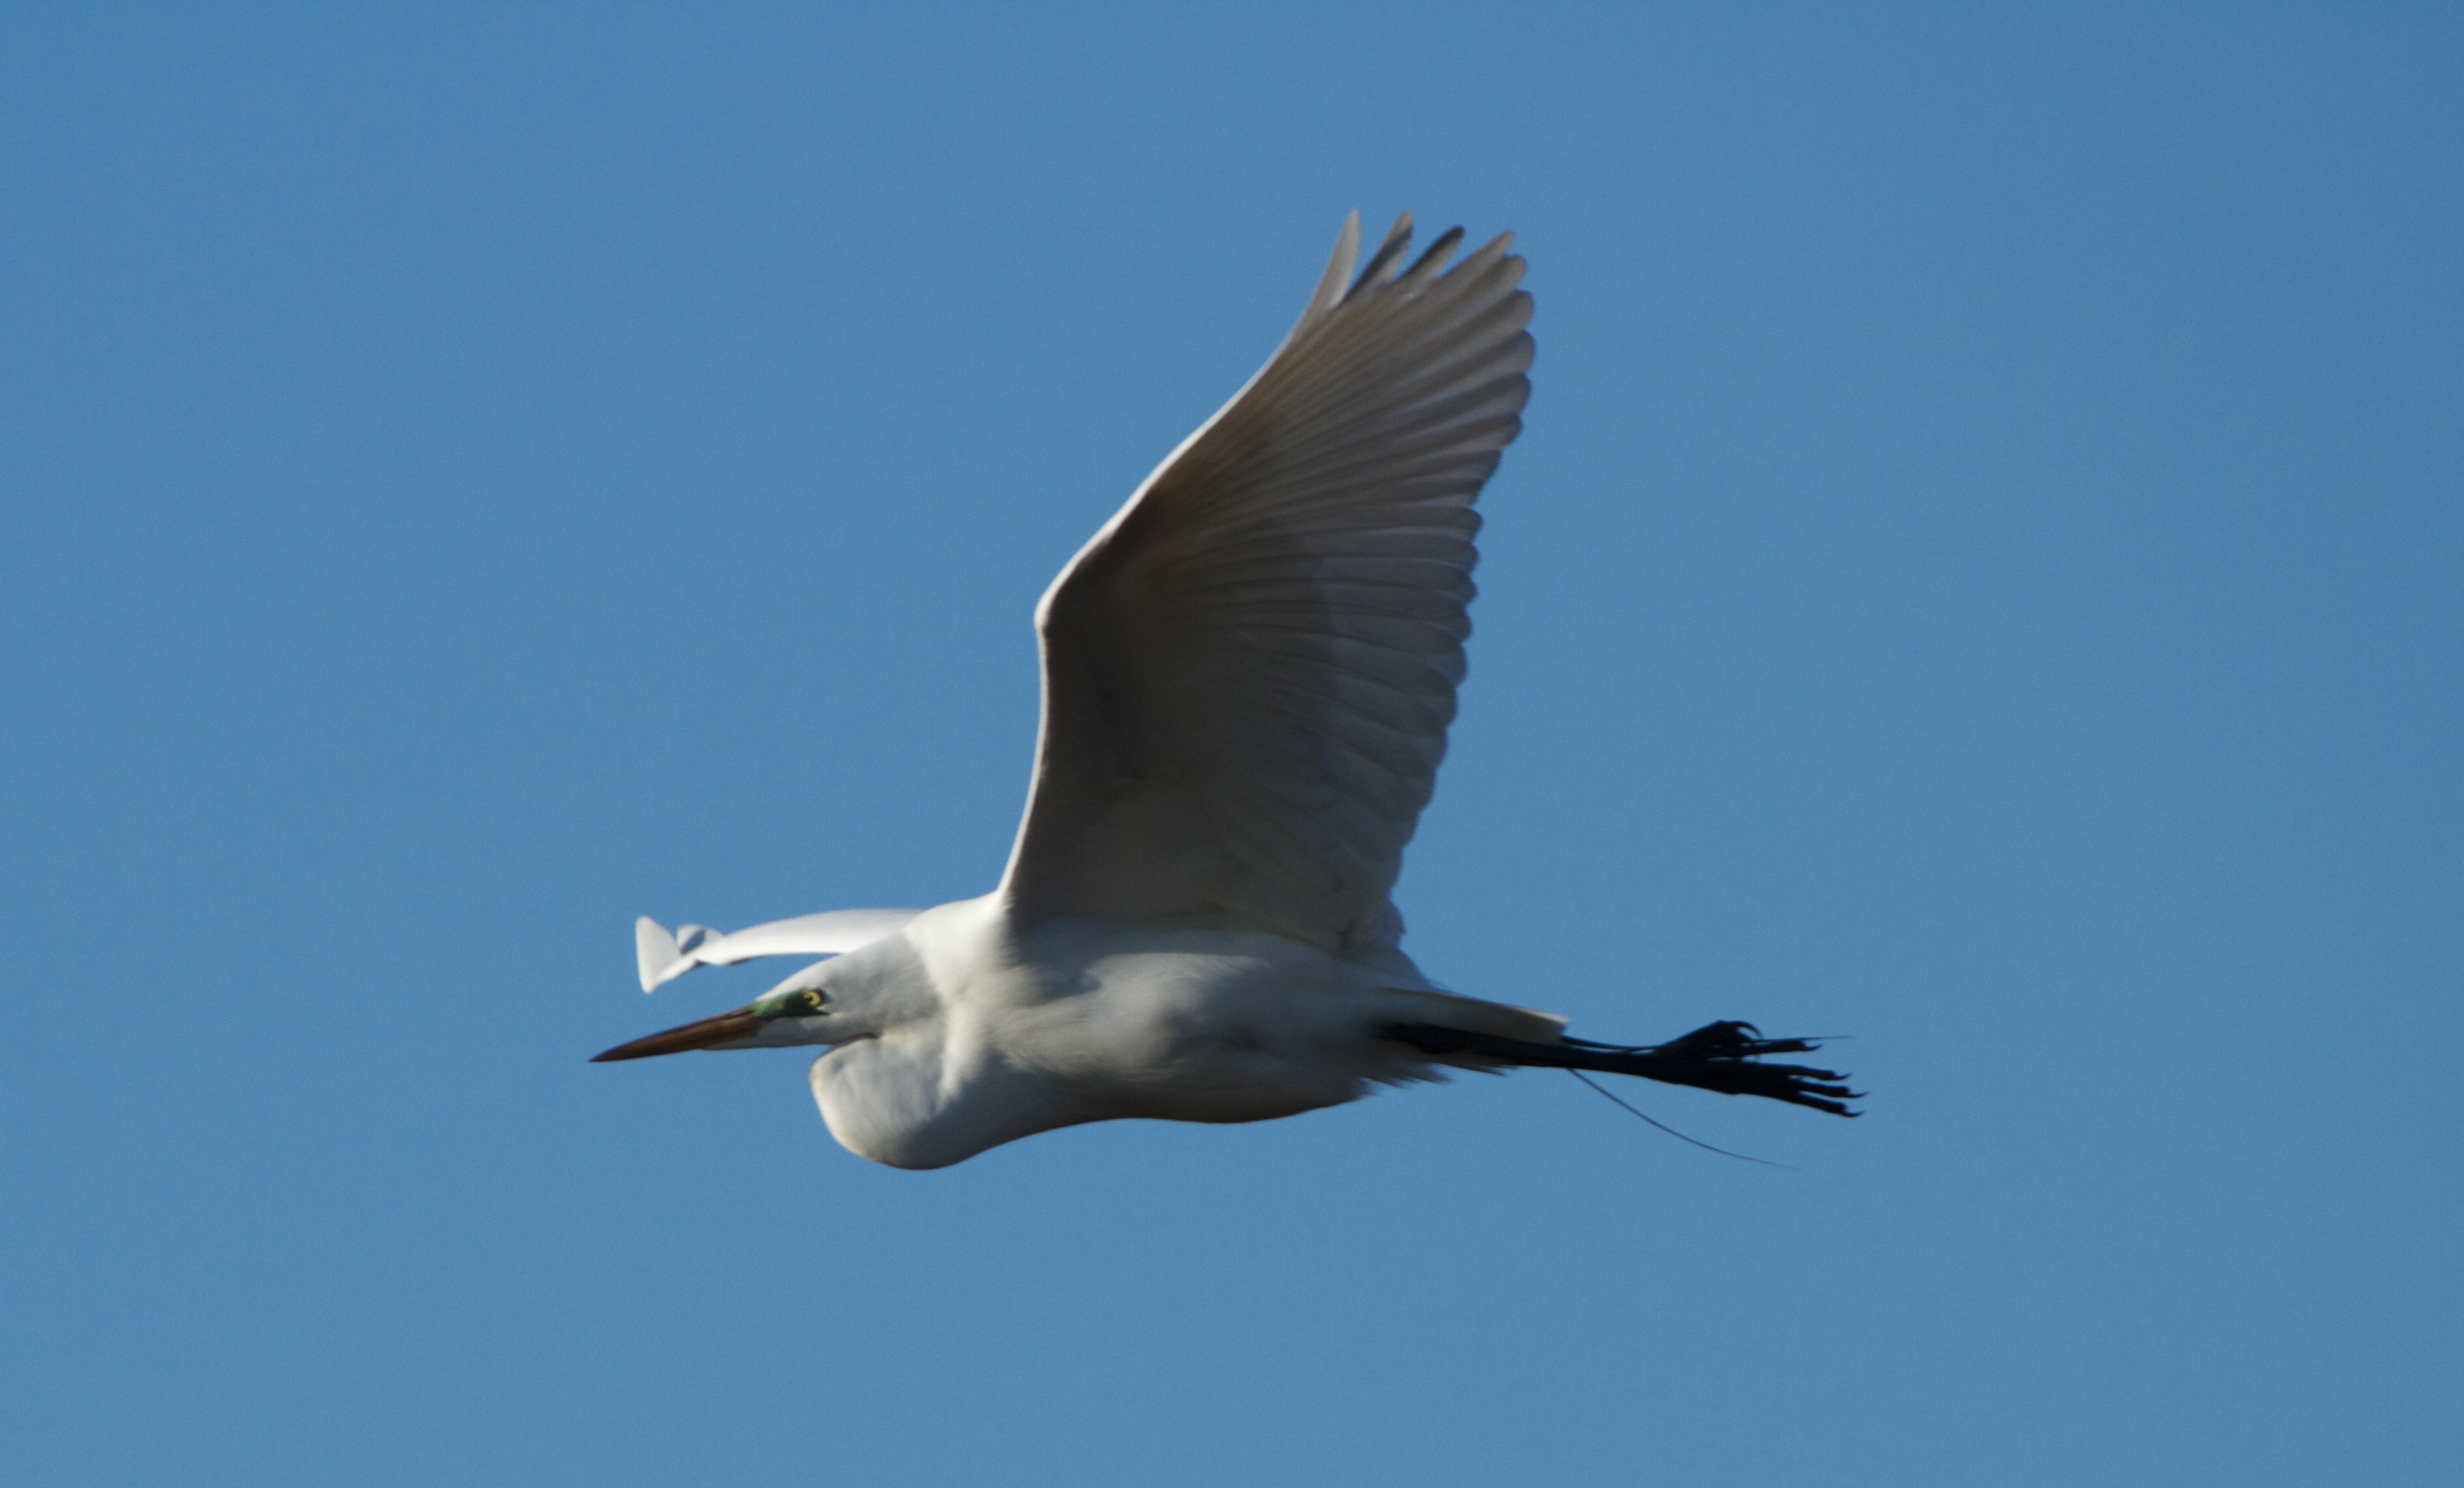 A Great Egret greets the morning on wing.